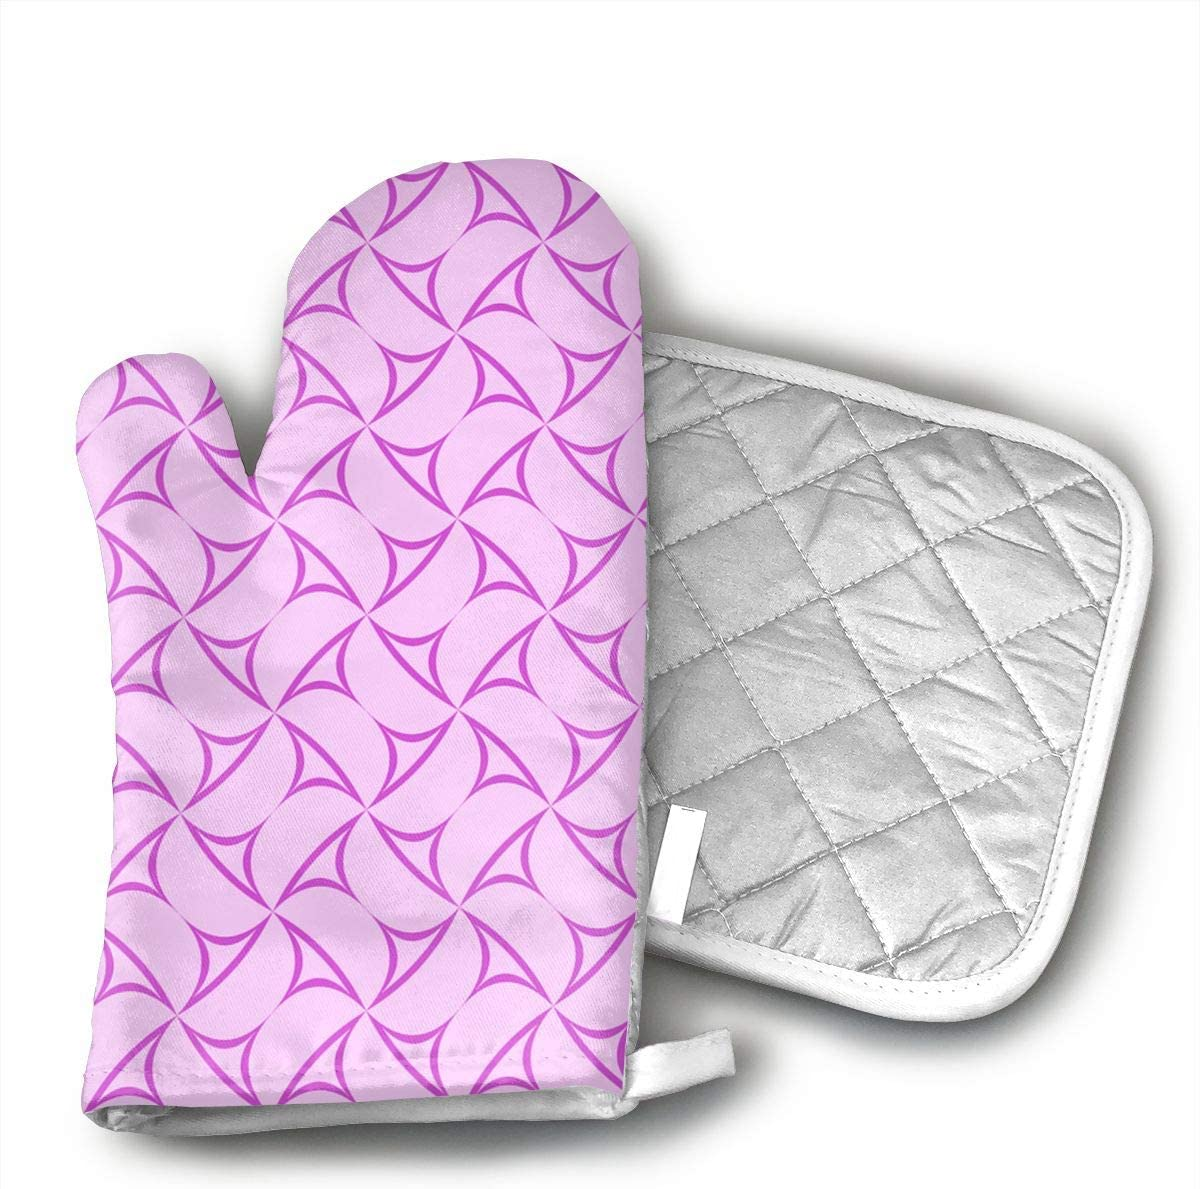 EROJfj Pink Pattern Curved Shape Polygon Oven Mitts and Potholders BBQ Gloves-Oven Mitts and Pot Holders Non-Slip Cooking Gloves for Cooking Baking Grilling